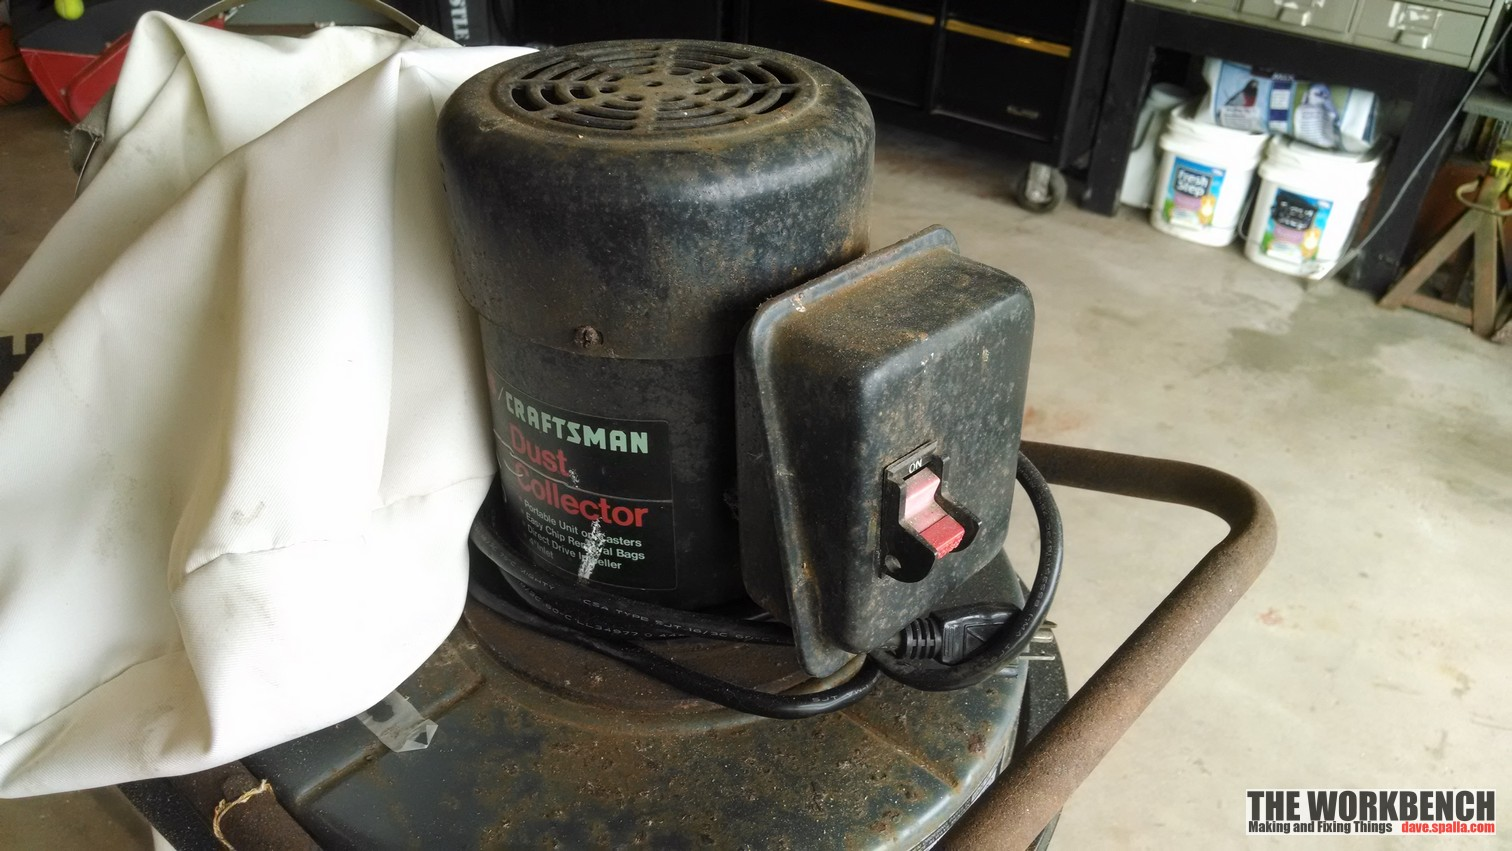 Sears Craftsman Dust Collector Refurb 113 299780 The